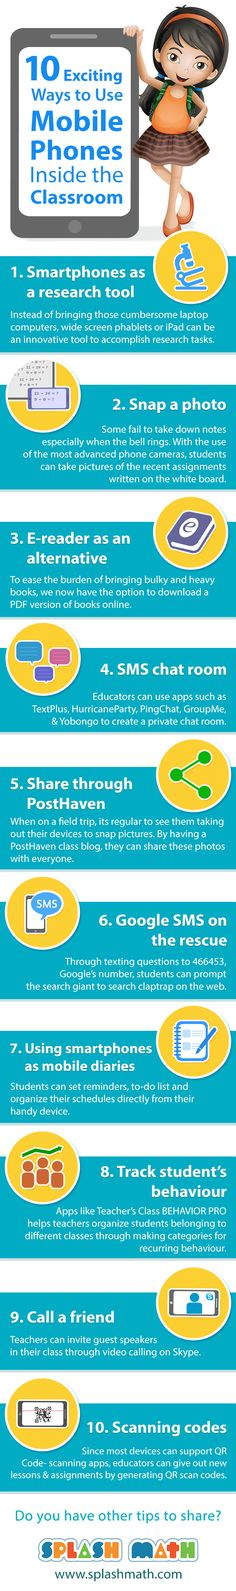 10-exciting-ways-to-use-mobile-phones-inside-the-classroom-thumbnail_537a07b13bb02.jpg (640×4317) #elearning #edtech #education